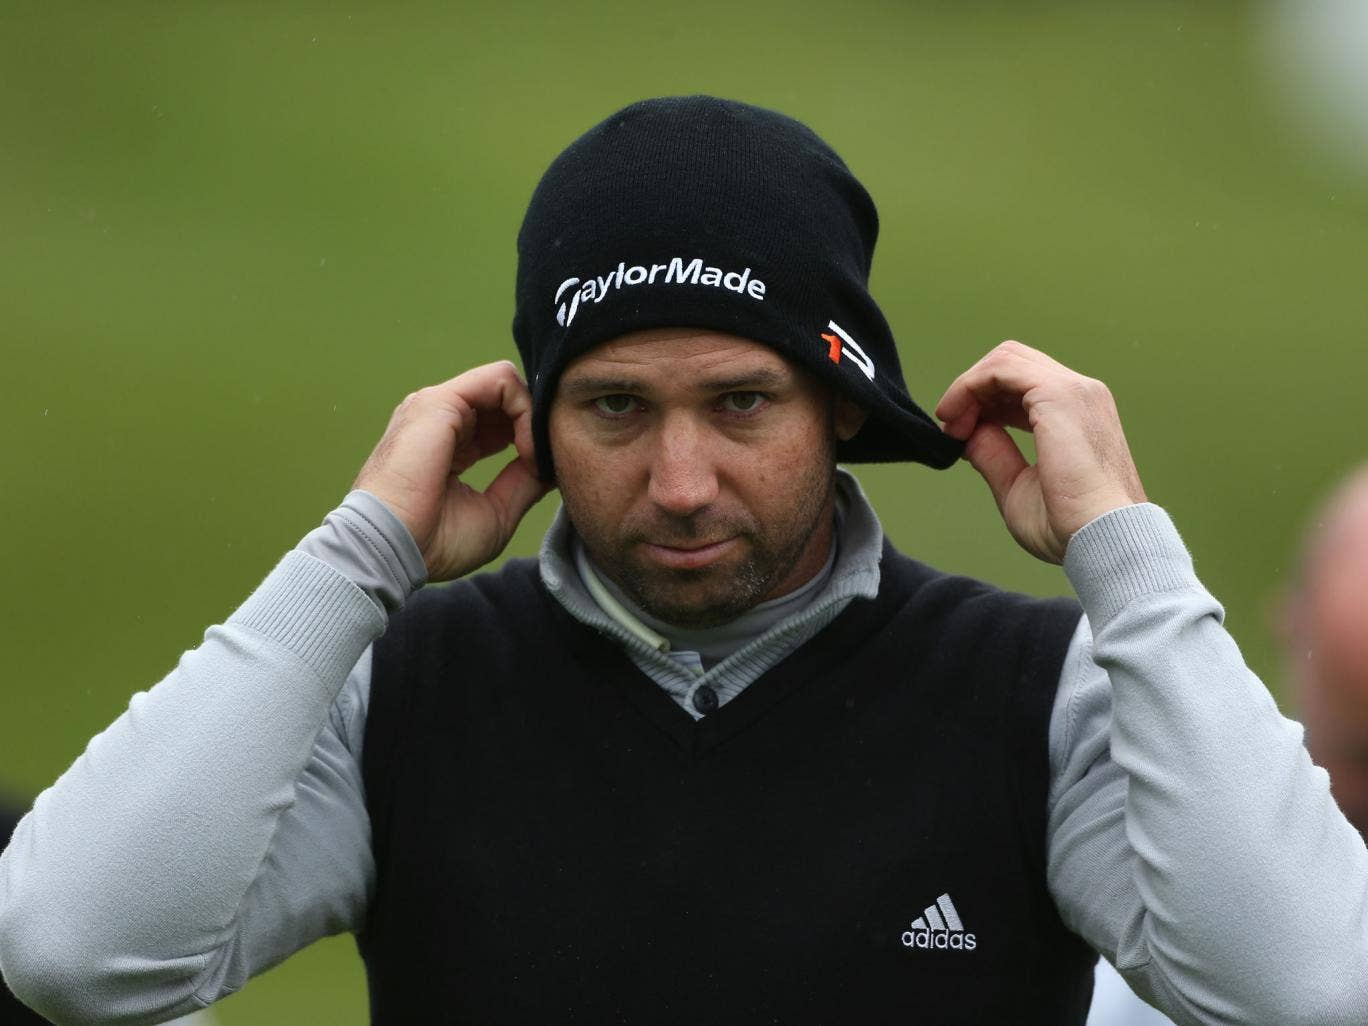 Bad taste: Sergio Garcia's fried-chicken dig at Tiger Woods highlighted how out of touch the game's attitudes are